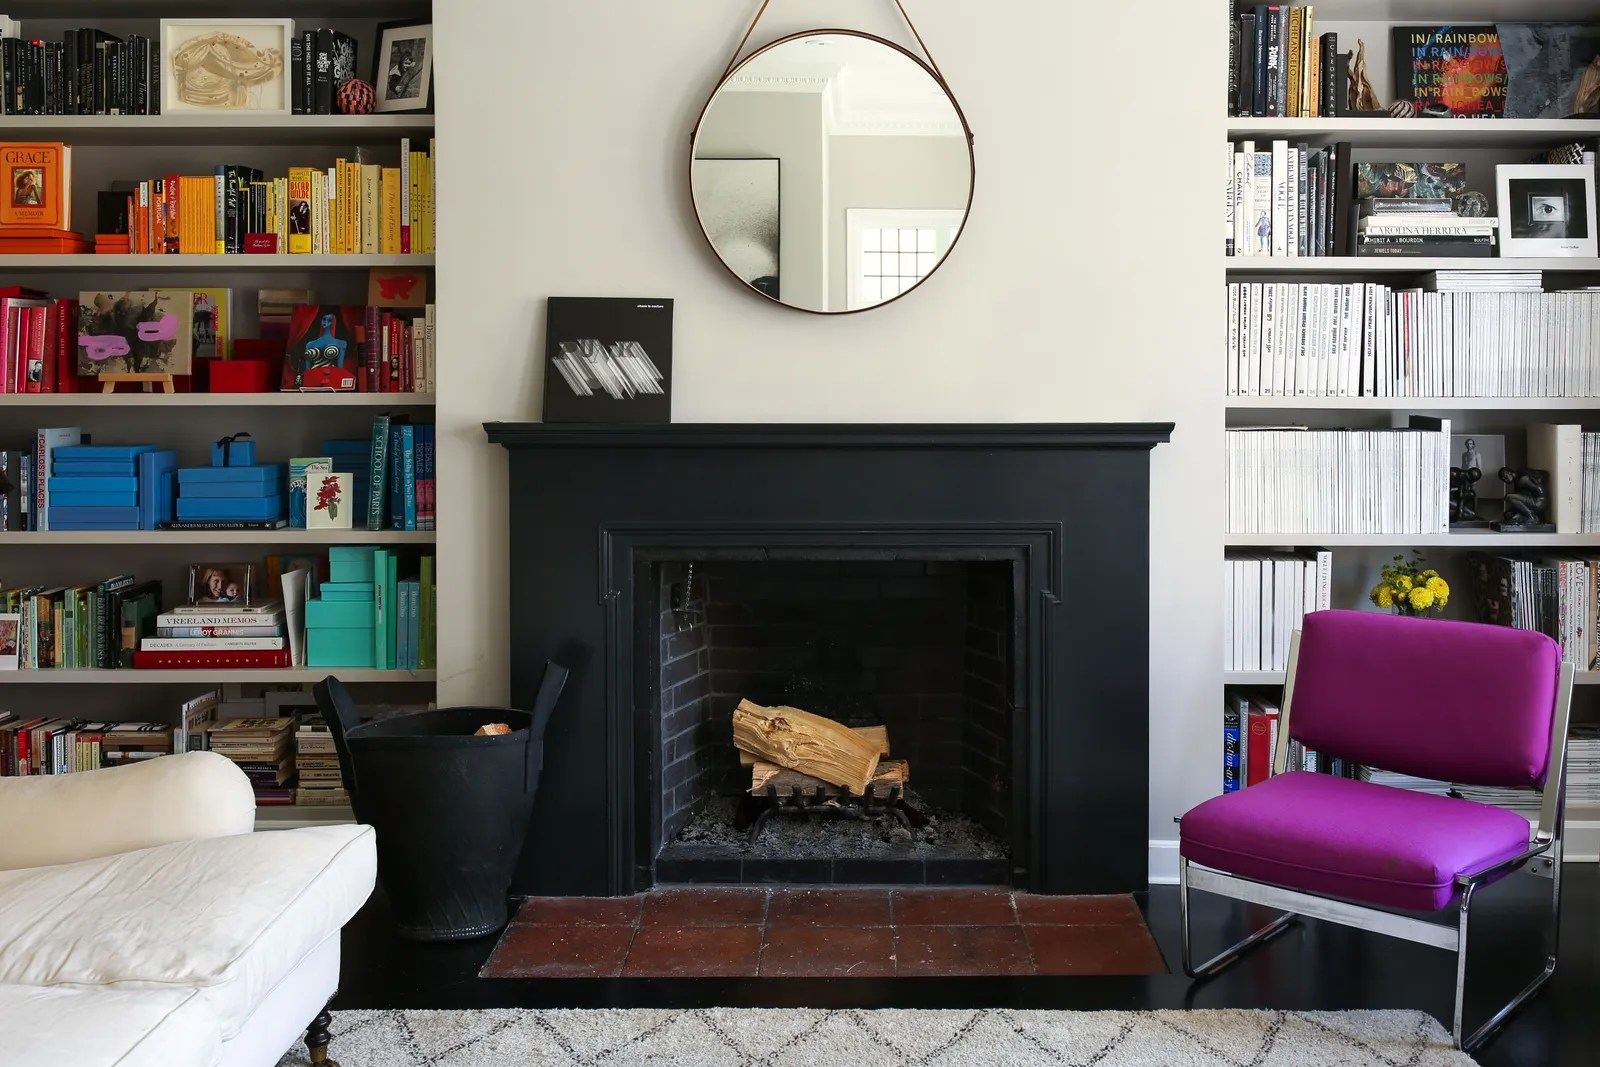 design small living room with fireplace end table decorating ideas 8 that will maximize your space bookshelves flanking a in lauren goodman s